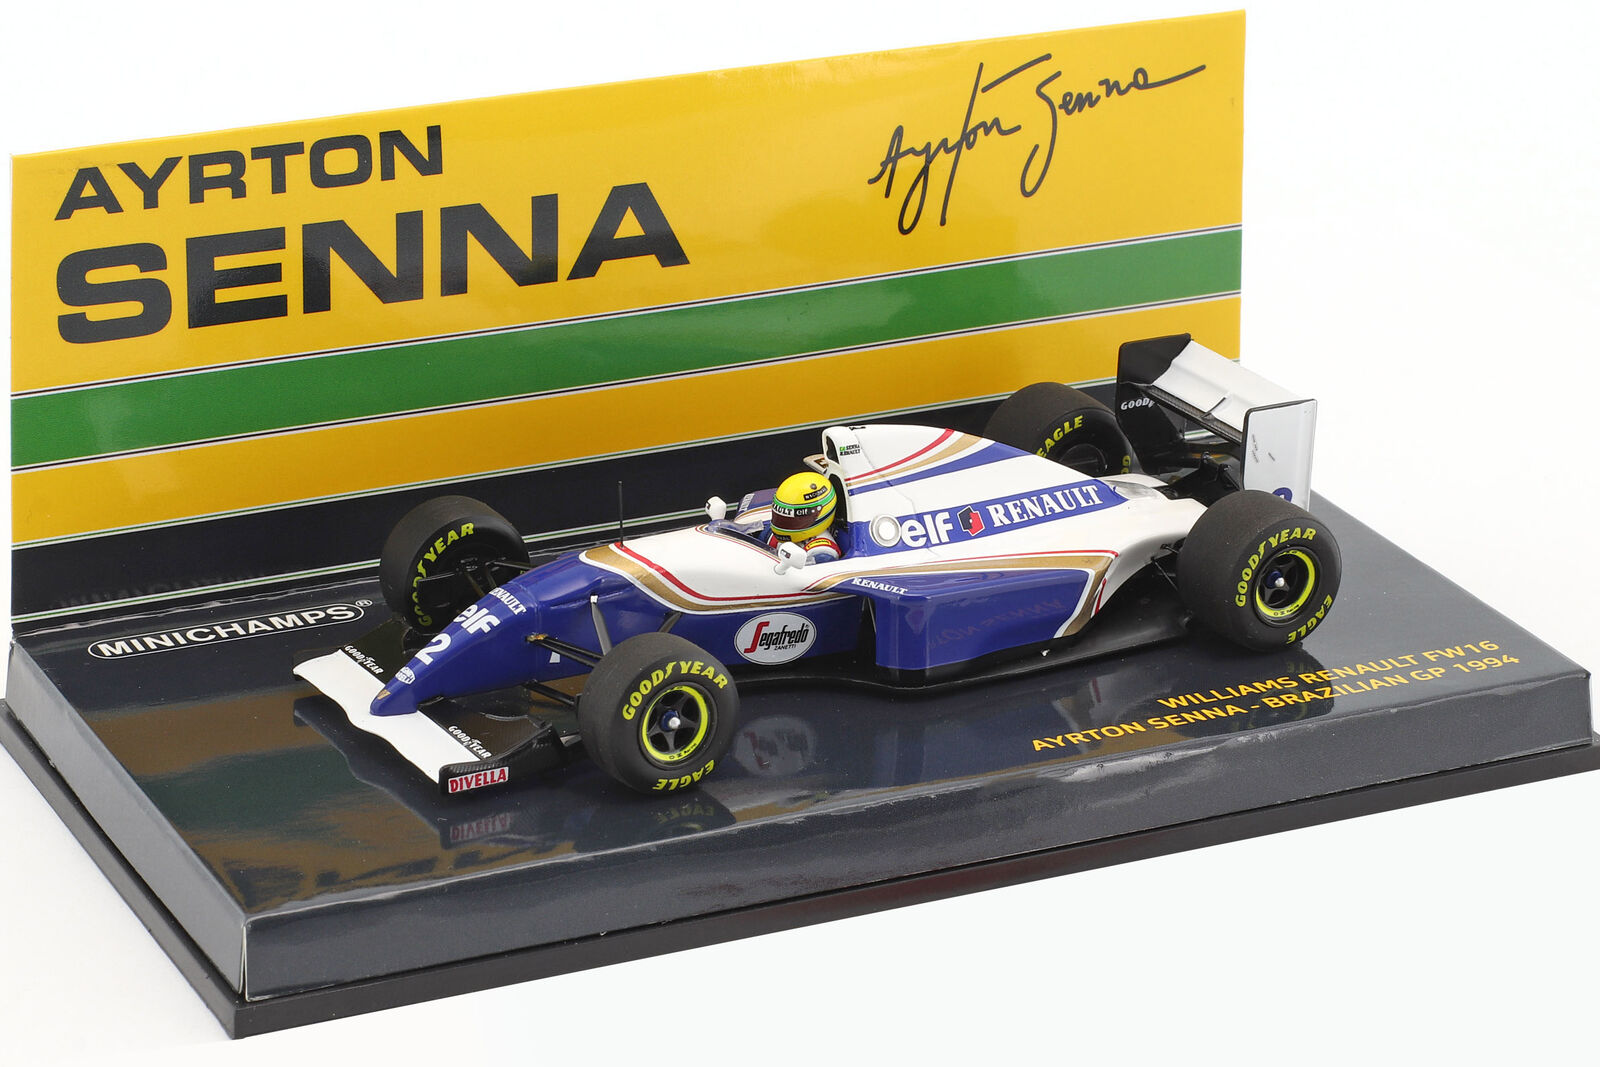 Ayrton Senna  Williams FW16  2 Brésilien Gp Formule 1 1994 1 43 Minichamps  mode